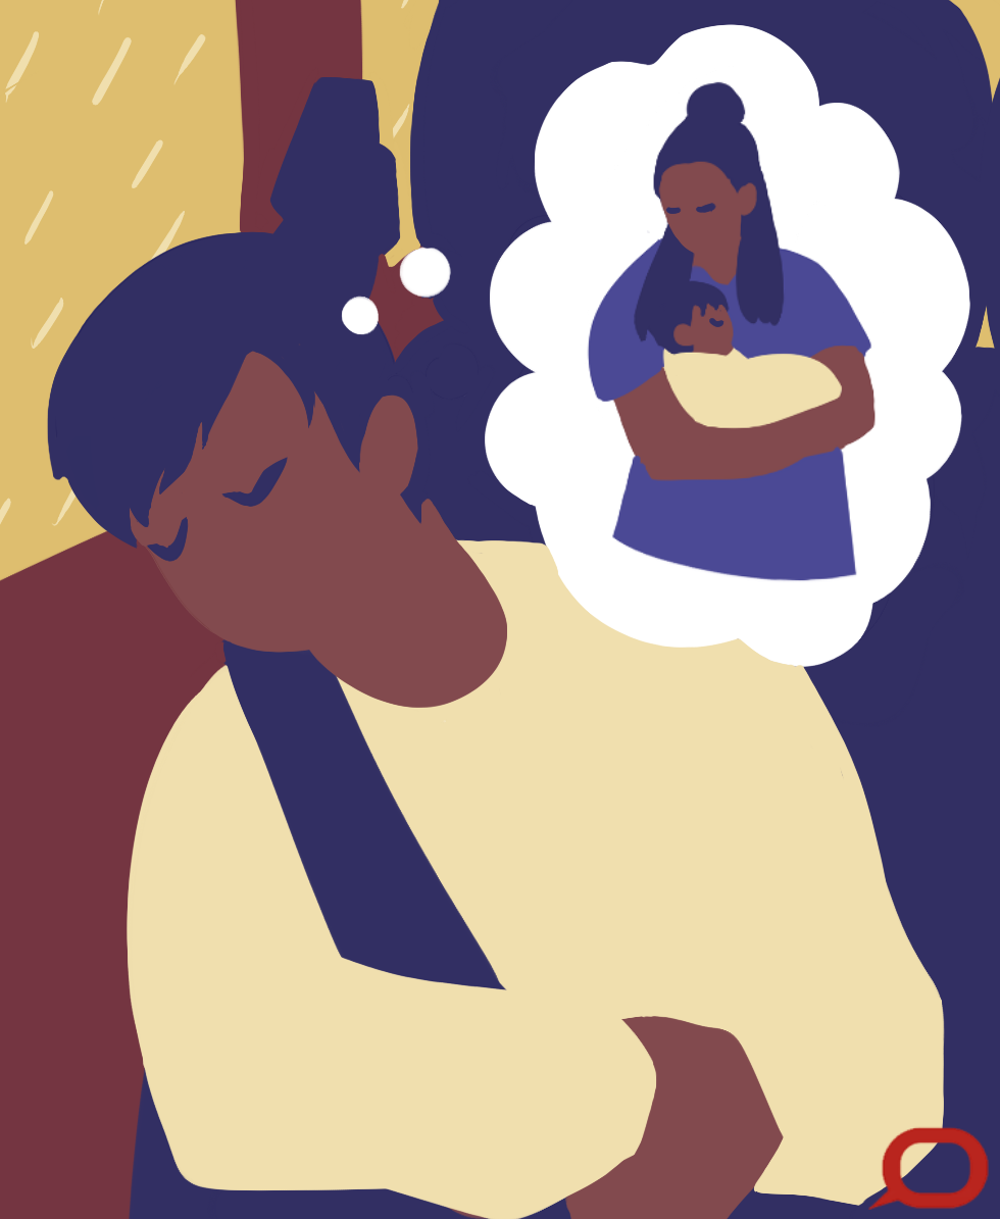 Sleep scientists say that rocking or slow, gentle movements can make us fall asleep if we are tired, just like when we are babies and our parents rock us to sleep. - Image Credit: Marcella Cheng/The Conversation, CC BY-ND (click to enlarge)